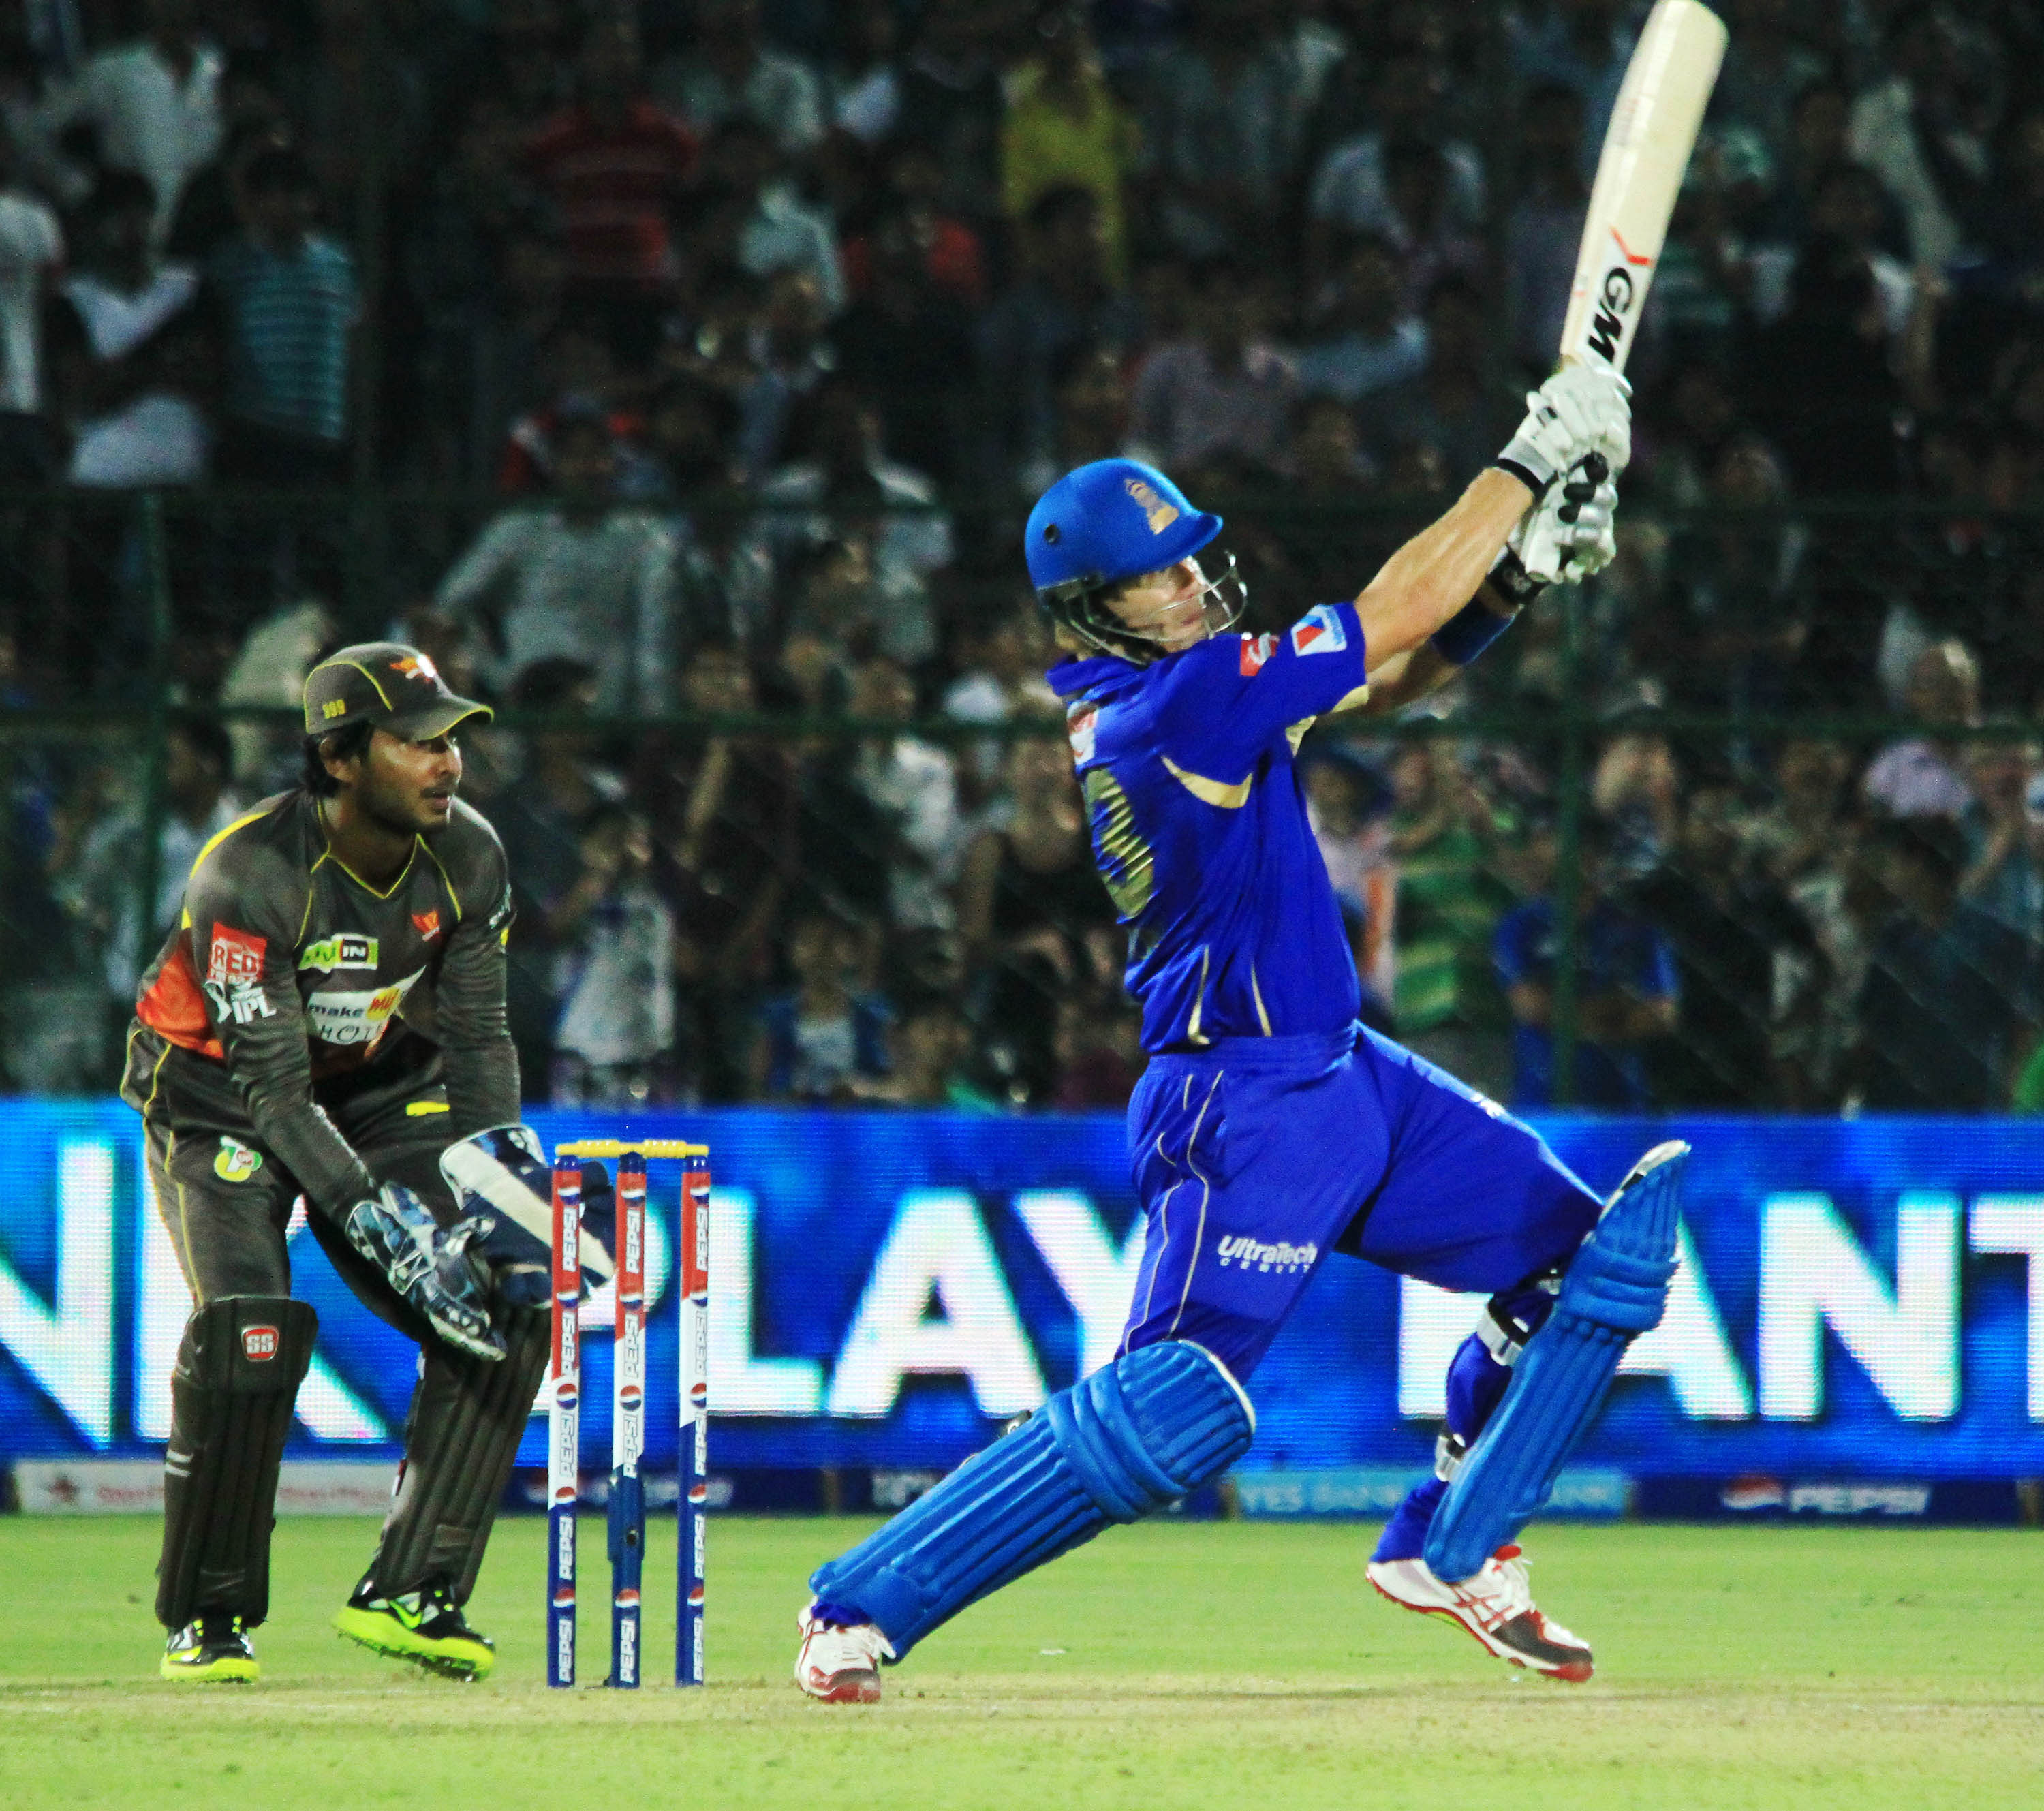 Rajasthan Royals beat Sunrisers Hyderabad by 4 wickets